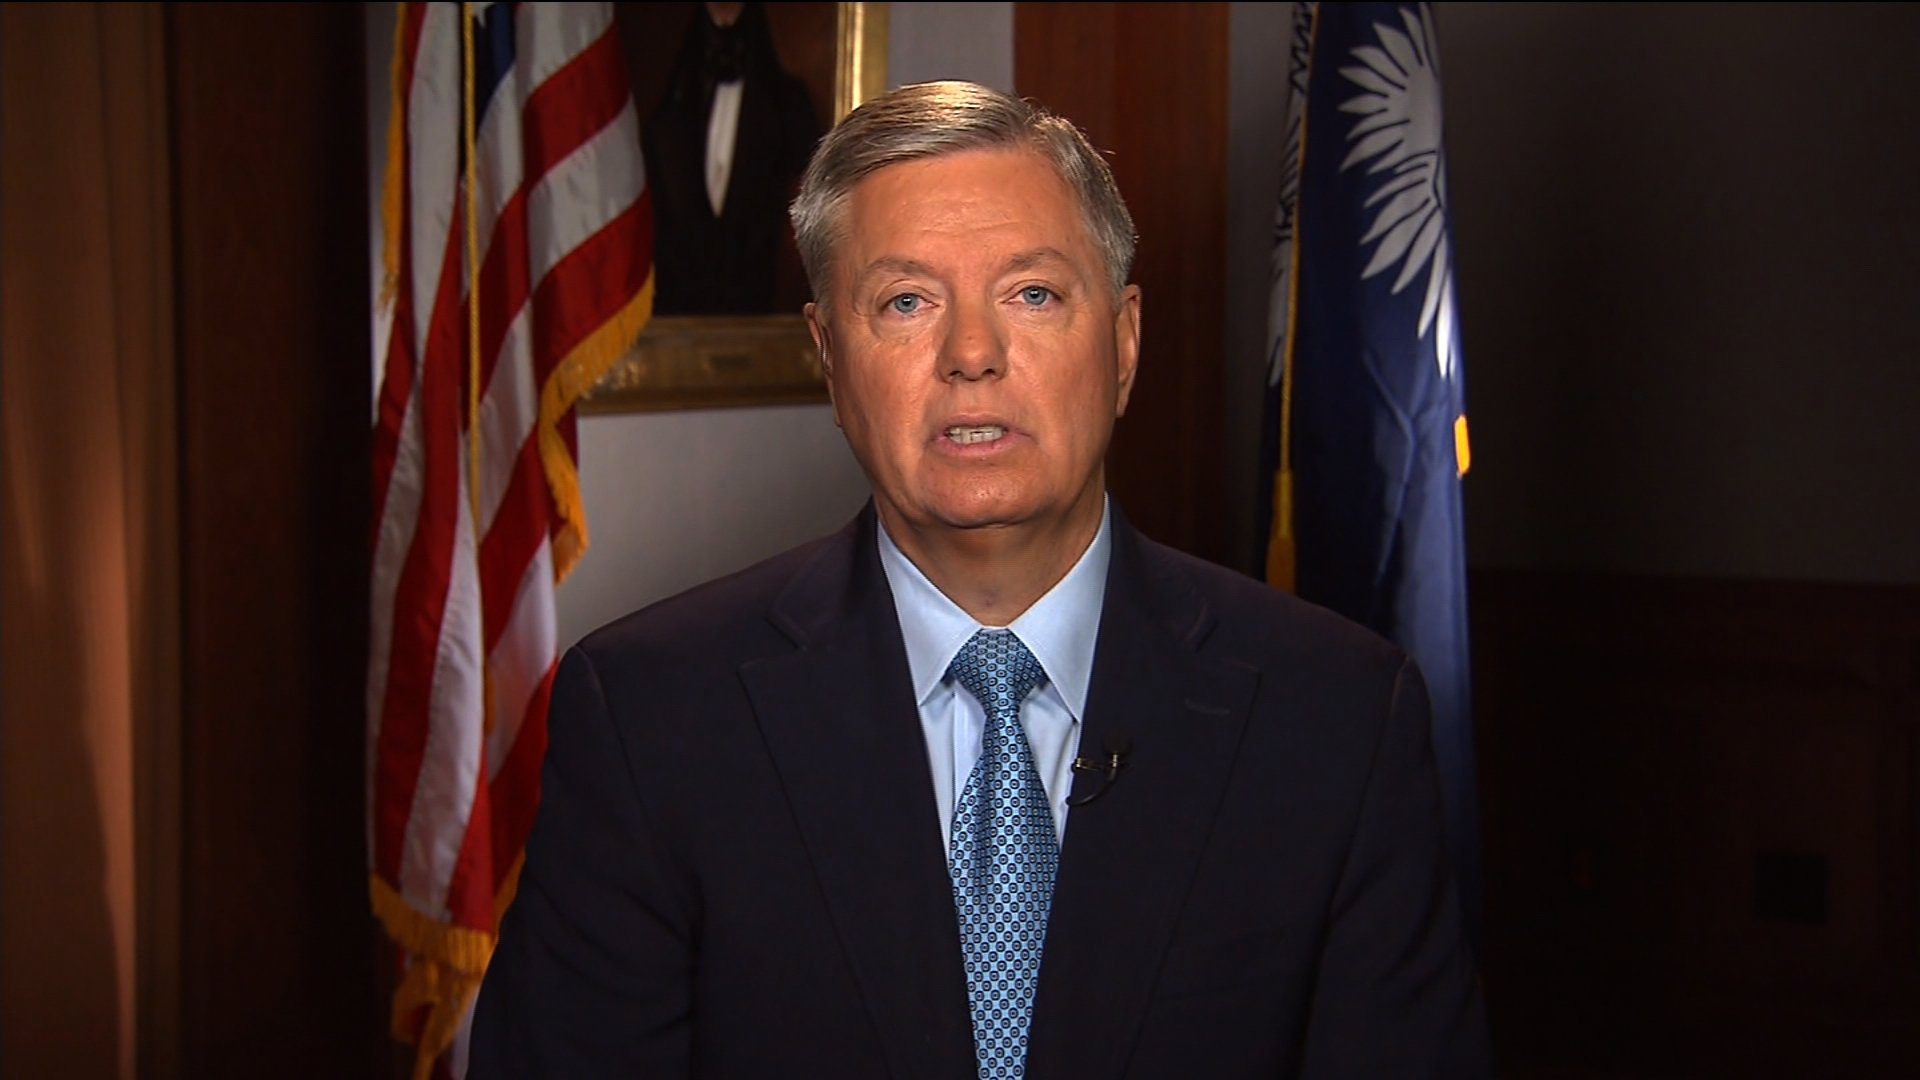 Republican Sen. Lindsey Graham said Thursday the administration is to blame for not preventing last week's terror attack at the Boston Marathon finish line. (credit: CNN)